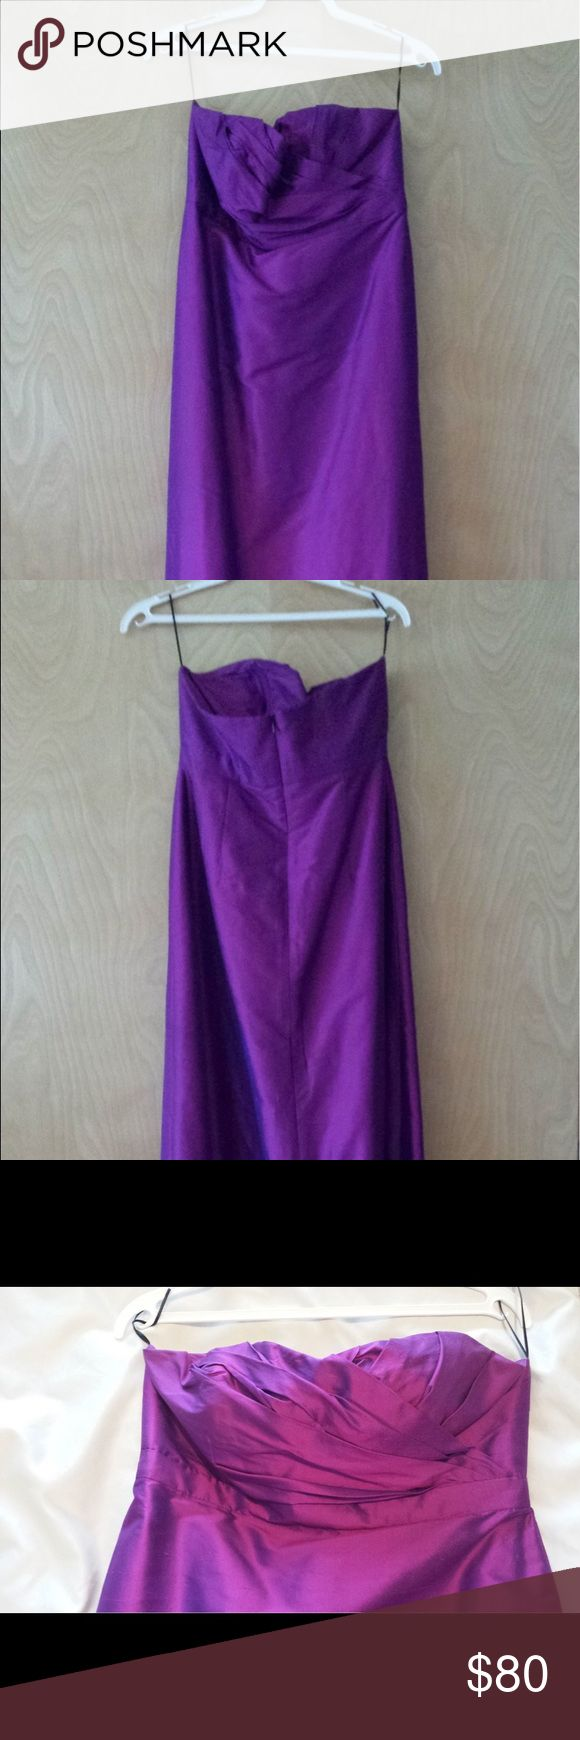 Purple bridesmaids dress and/or evening gown Worn once for a wedding (bridesmaid dress). Floor length and great condition! Brand is Lulakate! Dresses Strapless